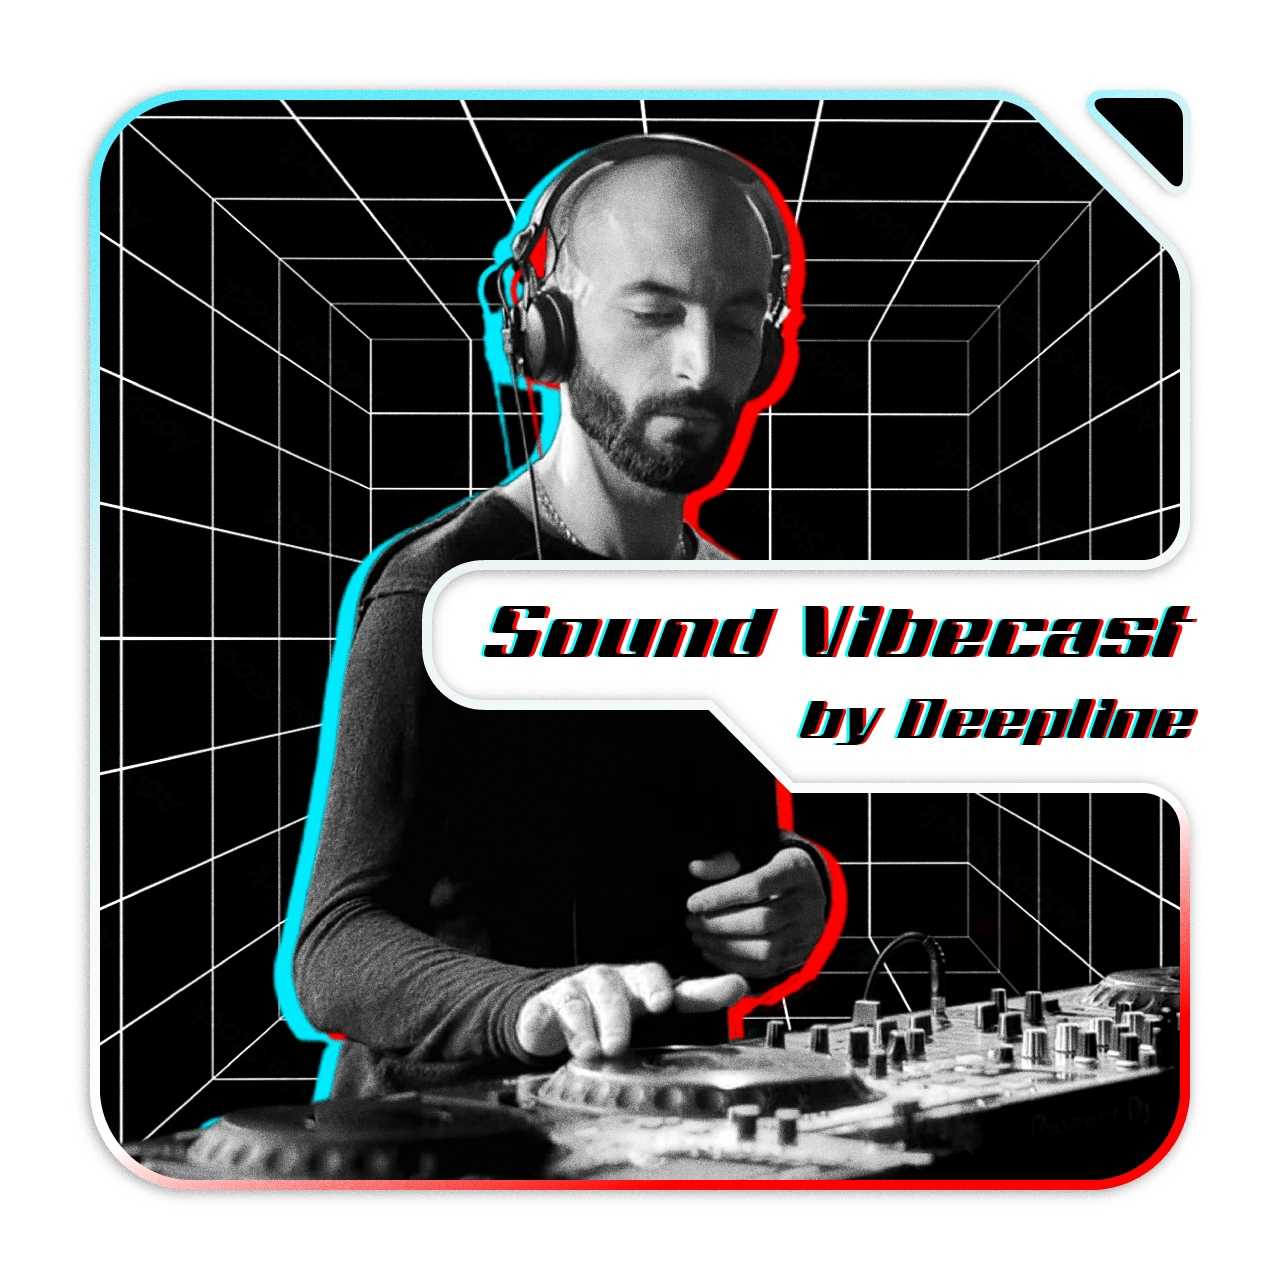 Sound Vibecast by Deepline